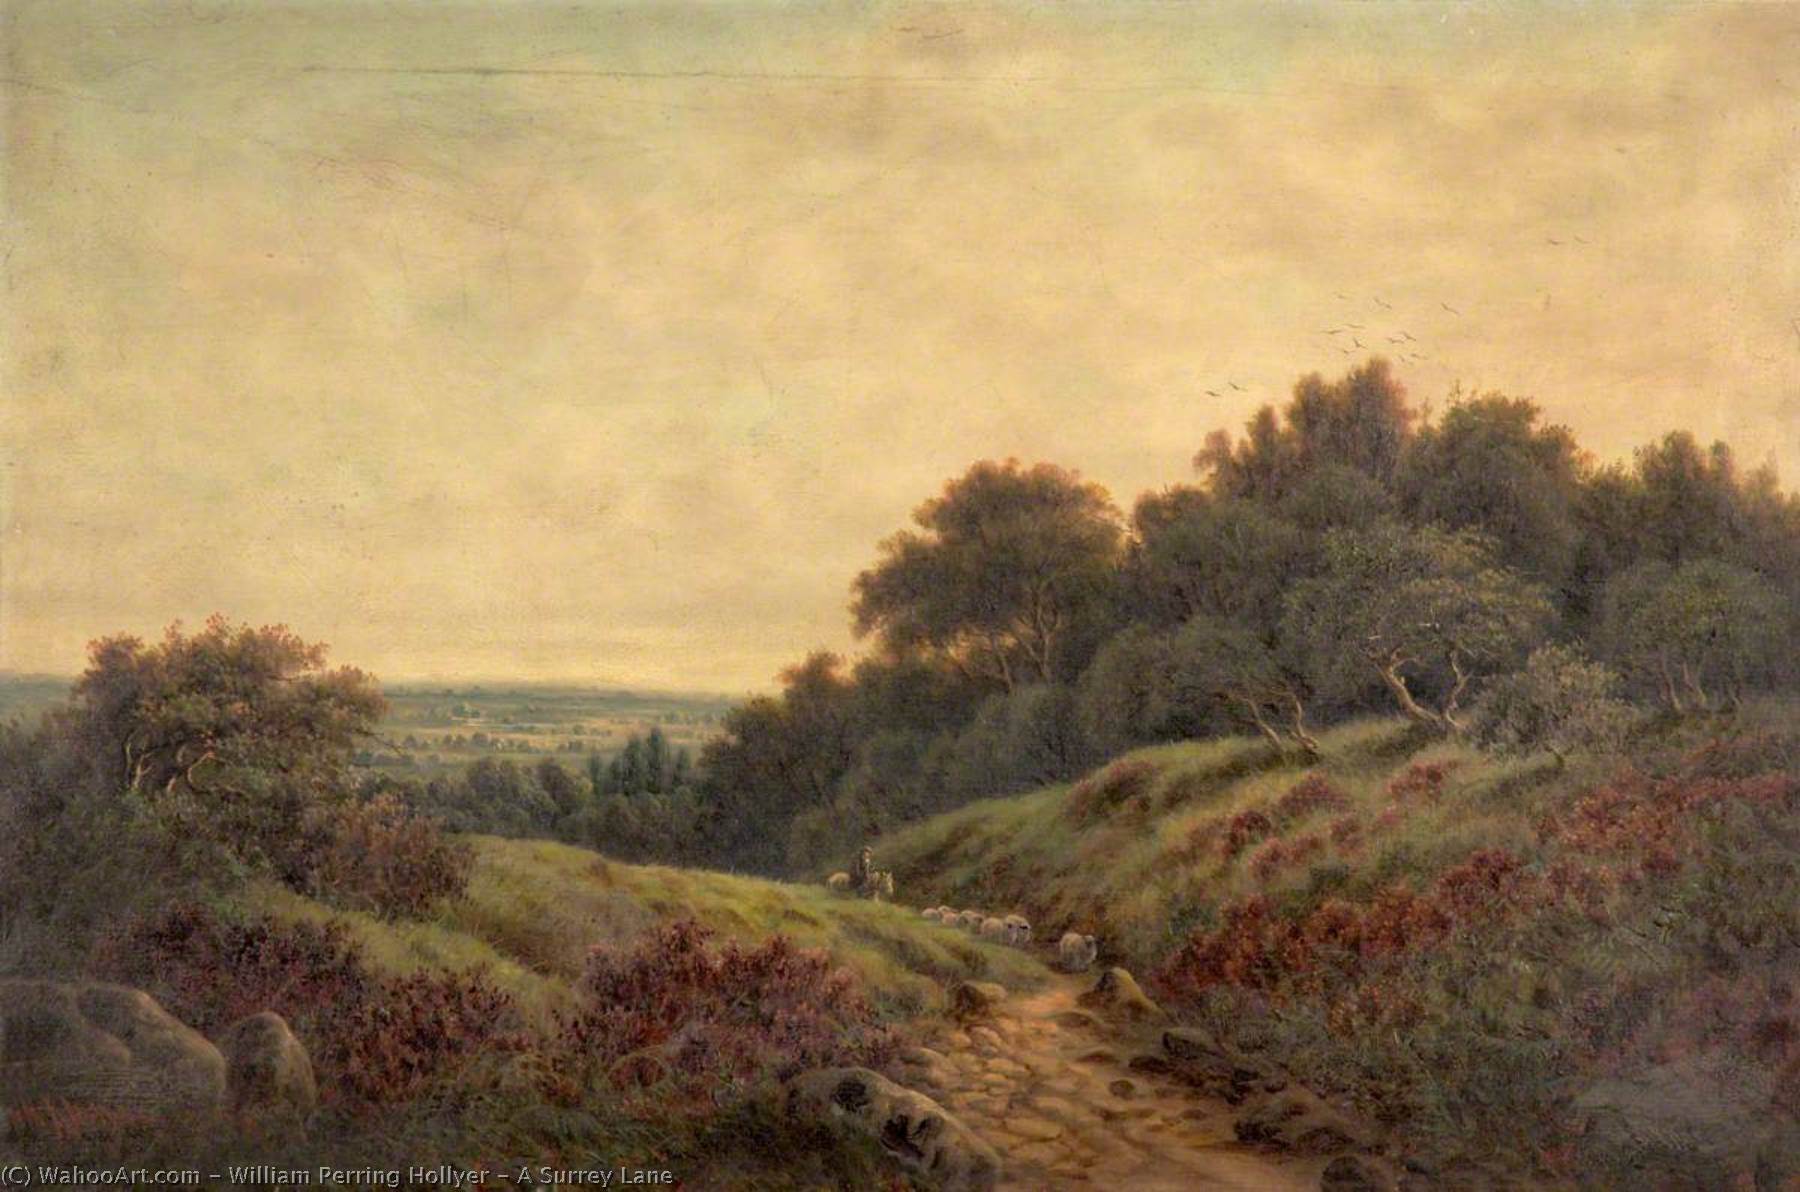 A Surrey Lane, Oil On Canvas by William Perring Hollyer